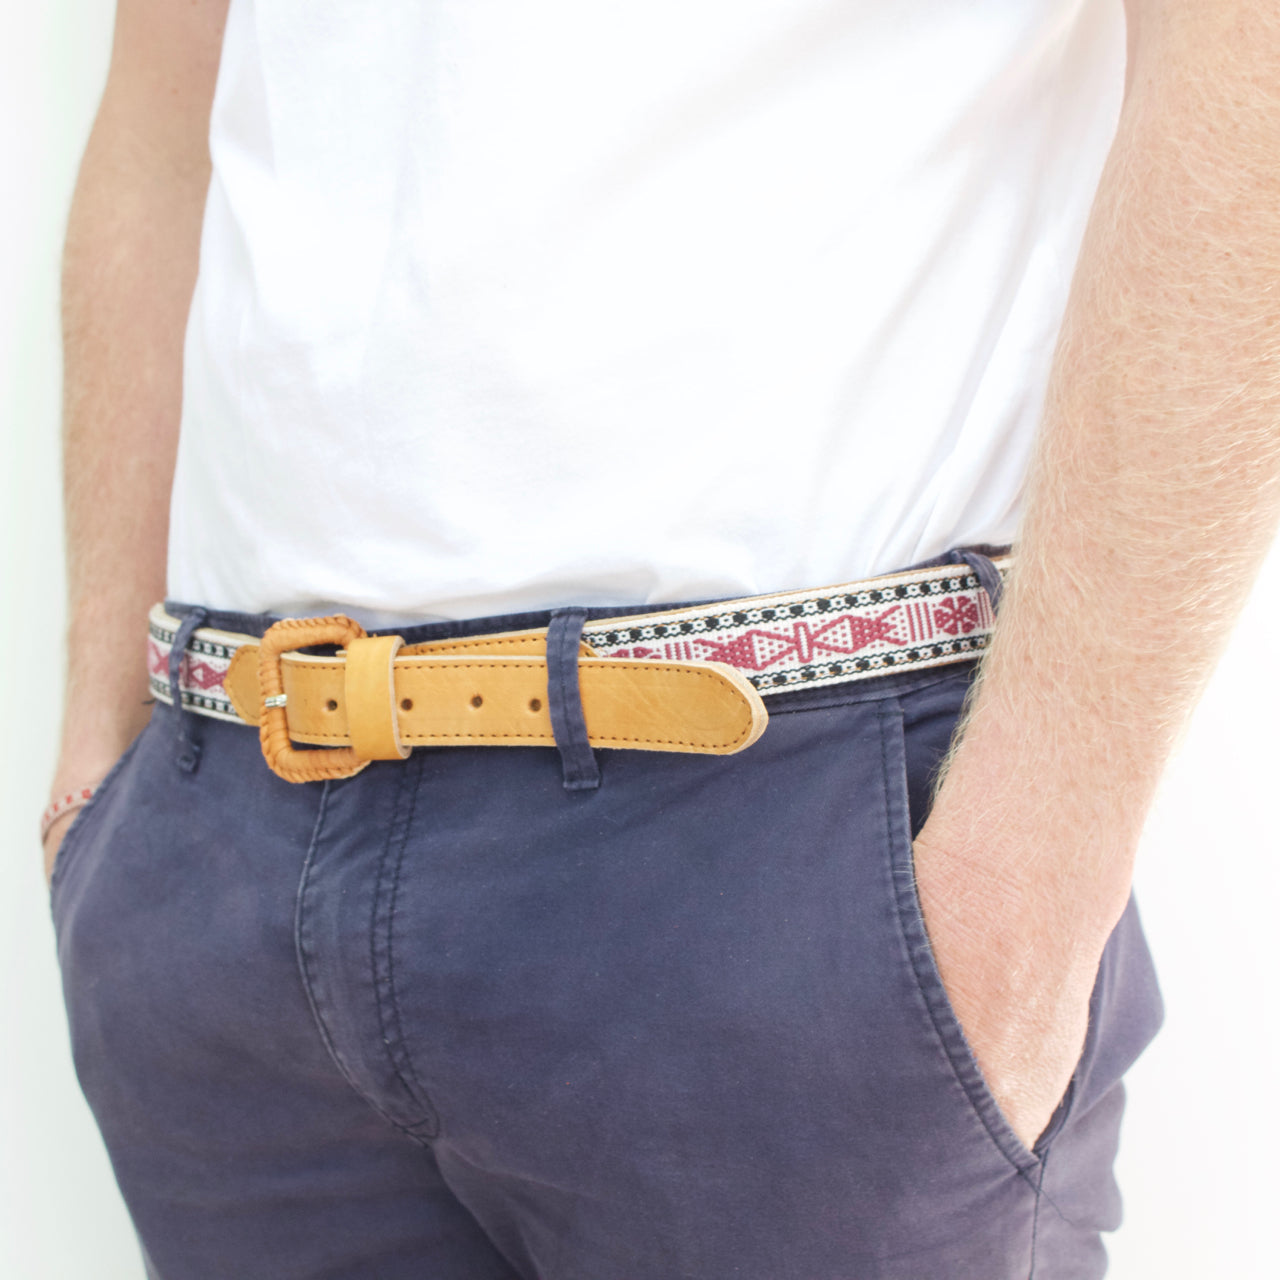 Santo Tomas Belt - Size 36 No. 07  Belt Cream - Cielo Collective handmade Mexico Guatemala